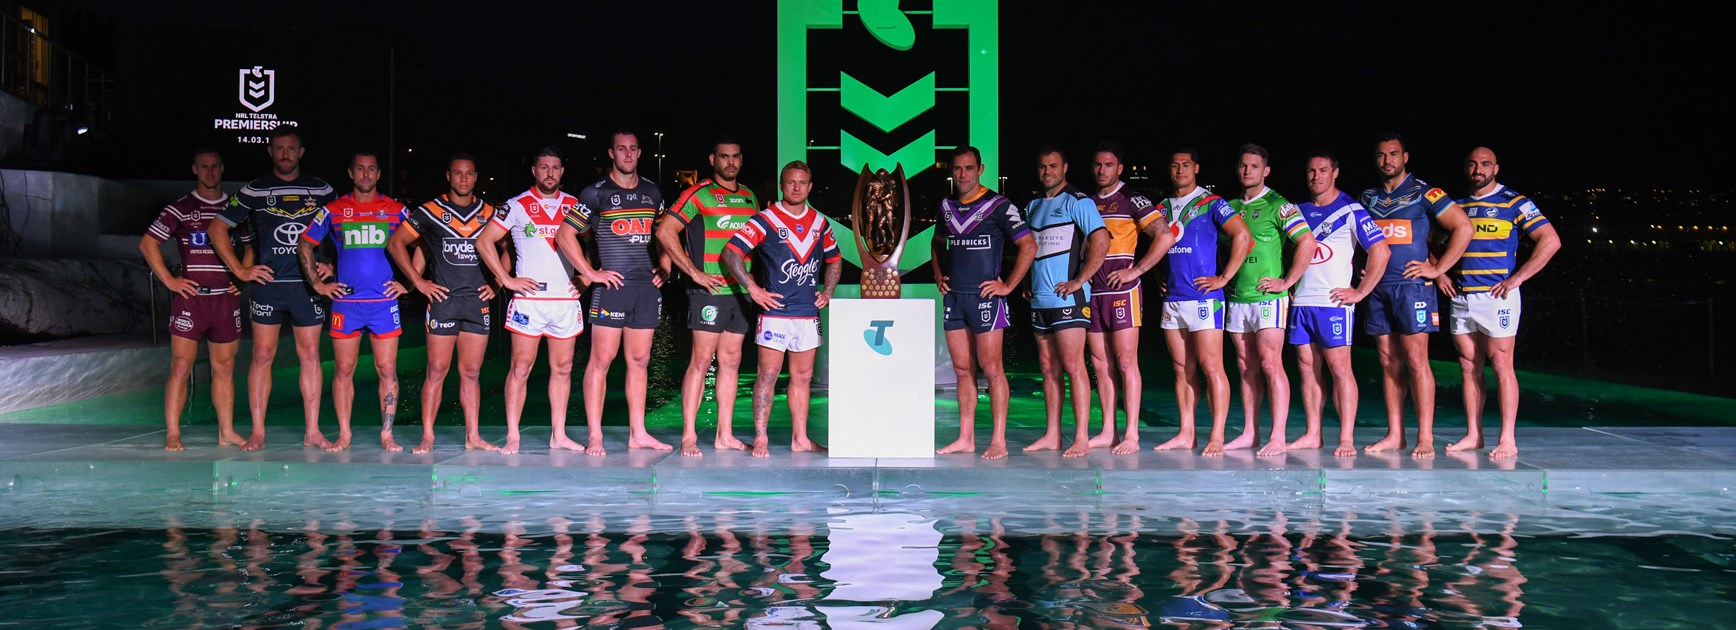 NRL Telstra Premiership 2019 Season Launched